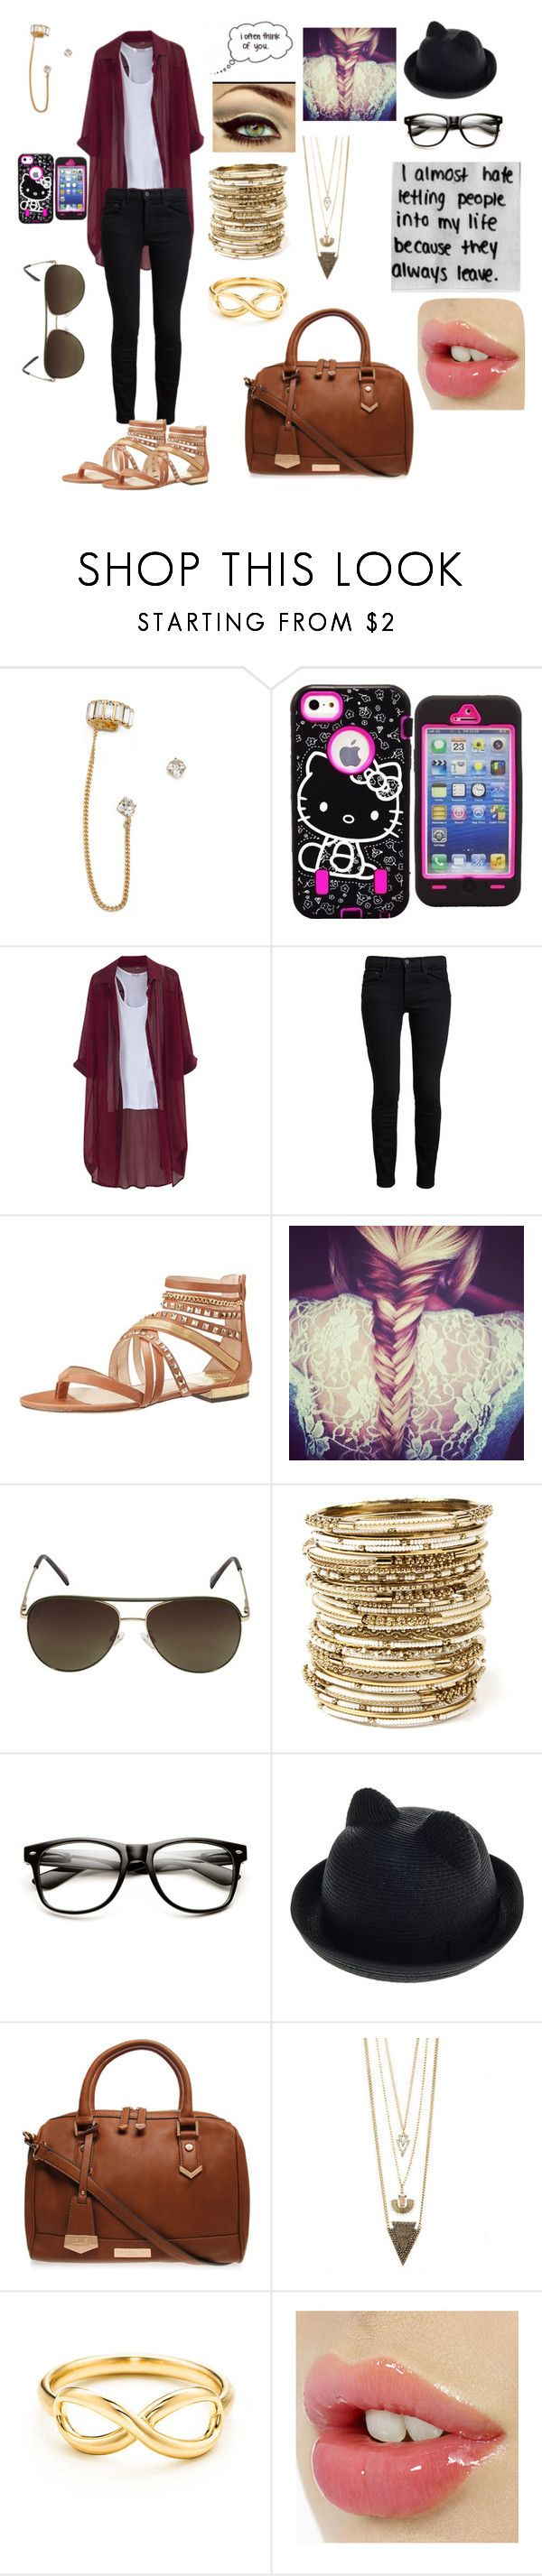 """""""Untitled #294"""" by oreokk22 ❤ liked on Polyvore featuring Auden, Hello Kitty, Chicnova Fashion, Proenza Schouler, Vince Camuto, Sanders, Amrita Singh, Carvela Kurt Geiger and Tiffany & Co."""